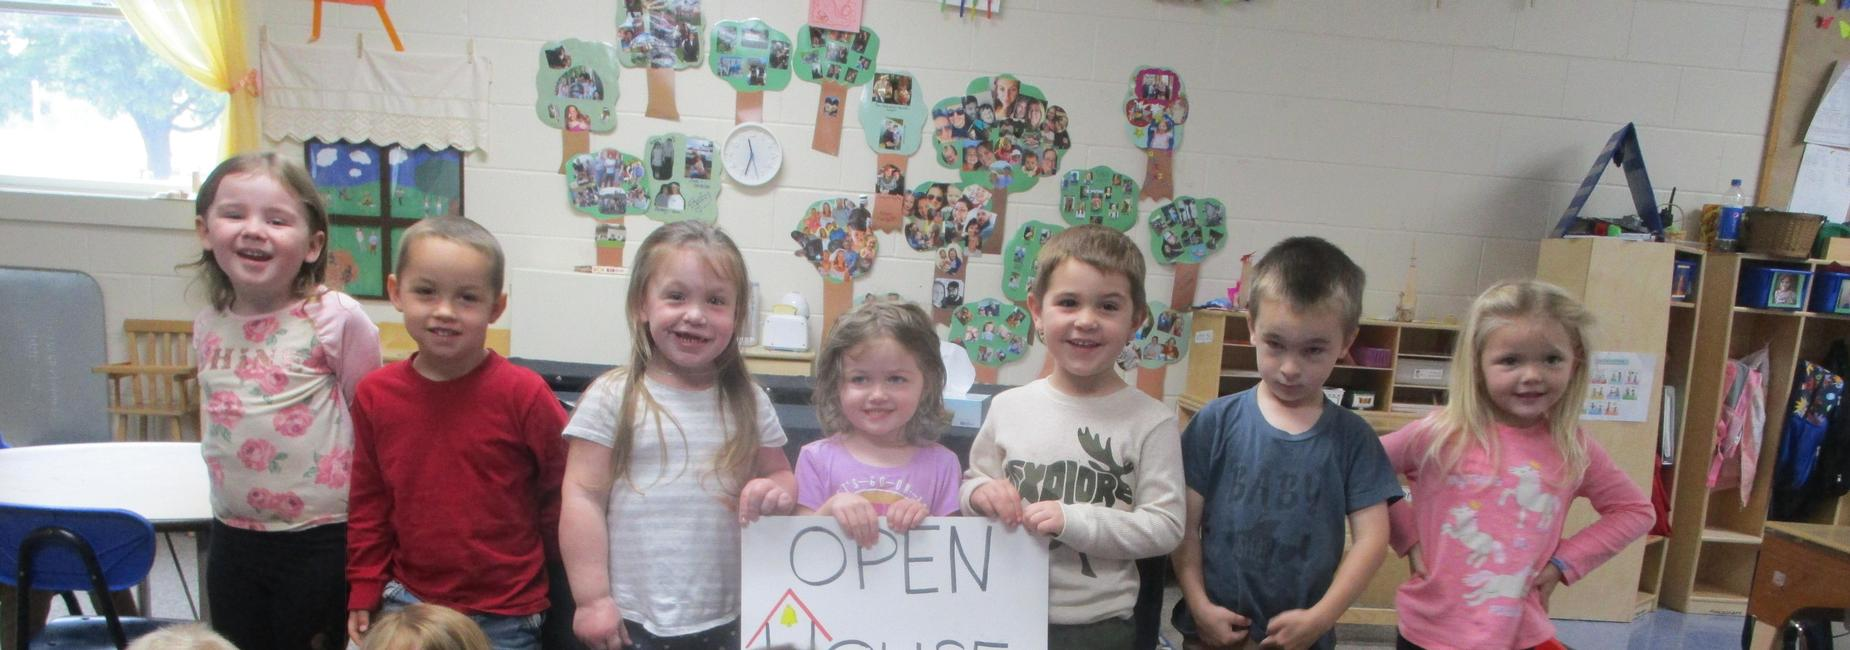 a group of children holding a sign that says Open House